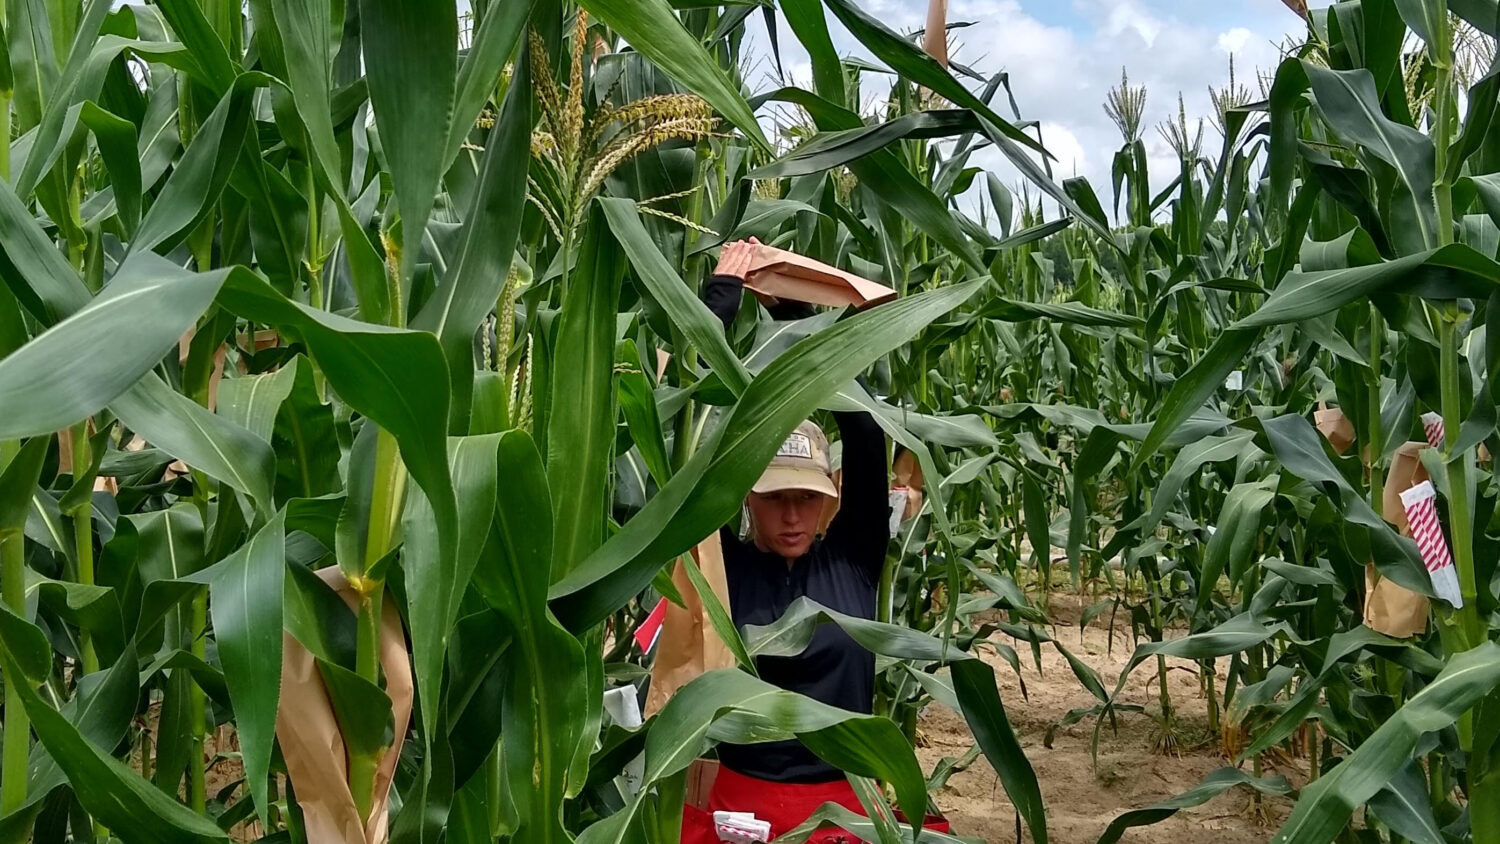 Student in maize field